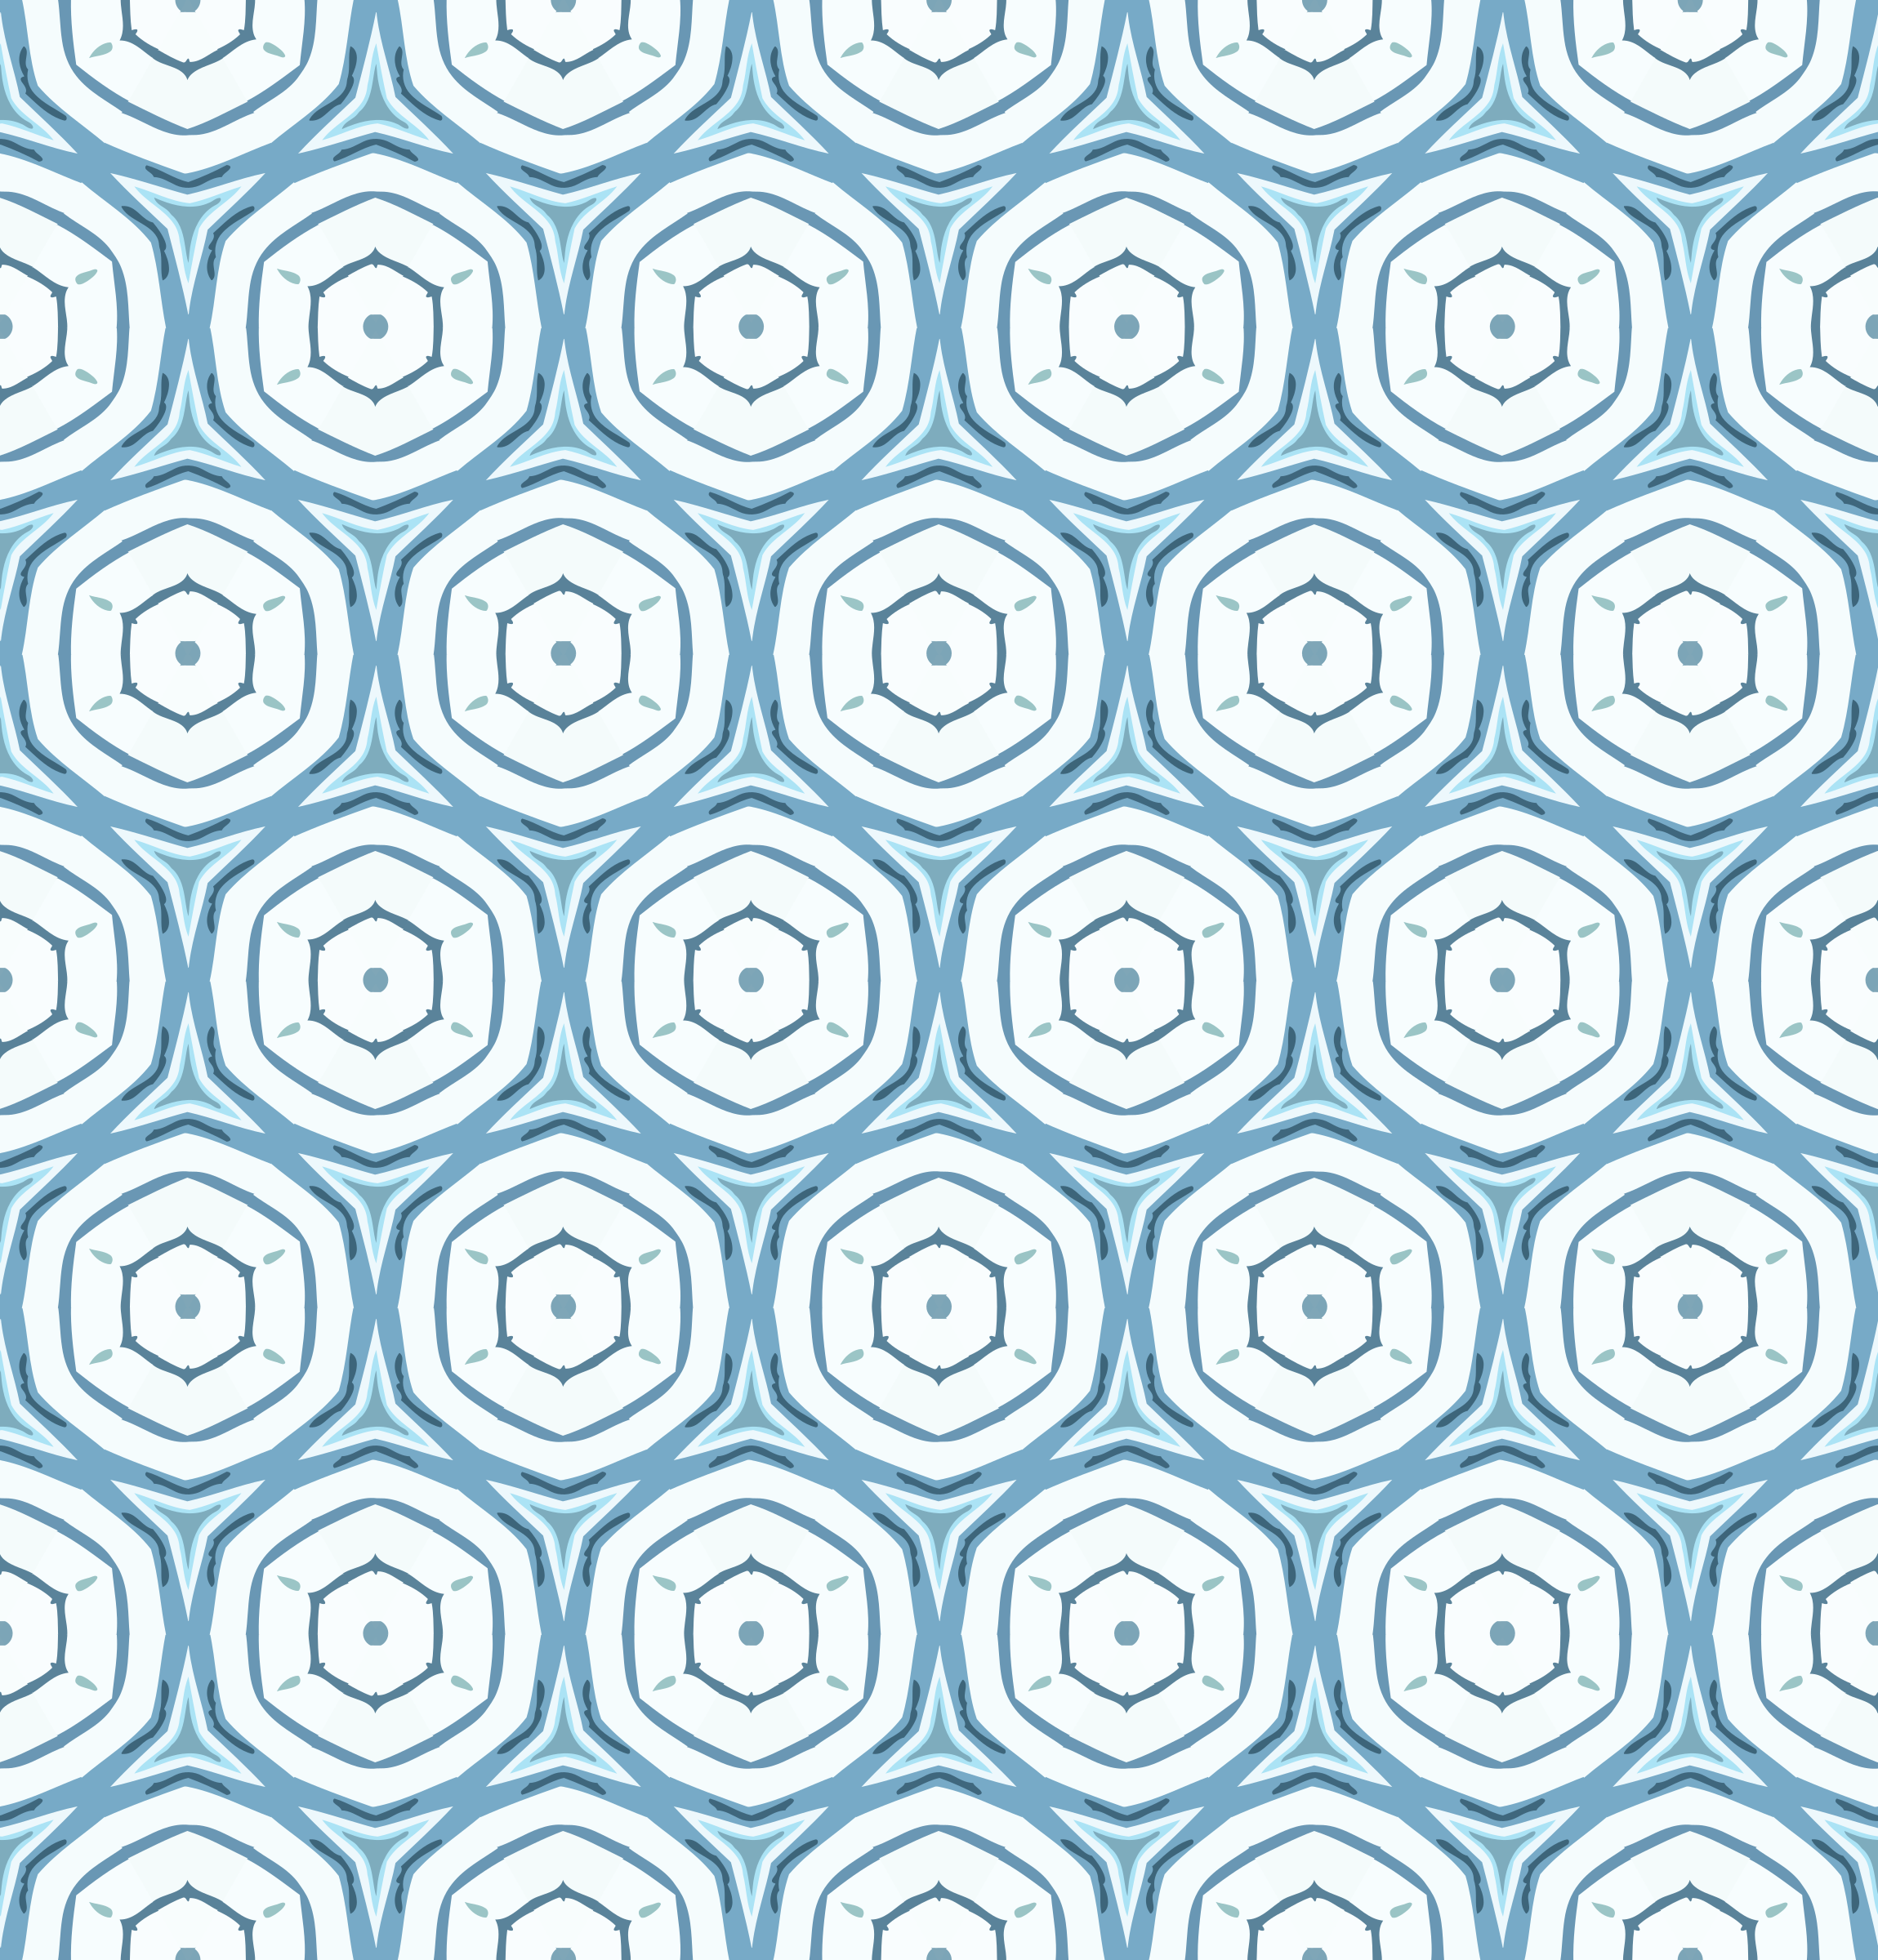 Background pattern 157 (colour 2) by Firkin